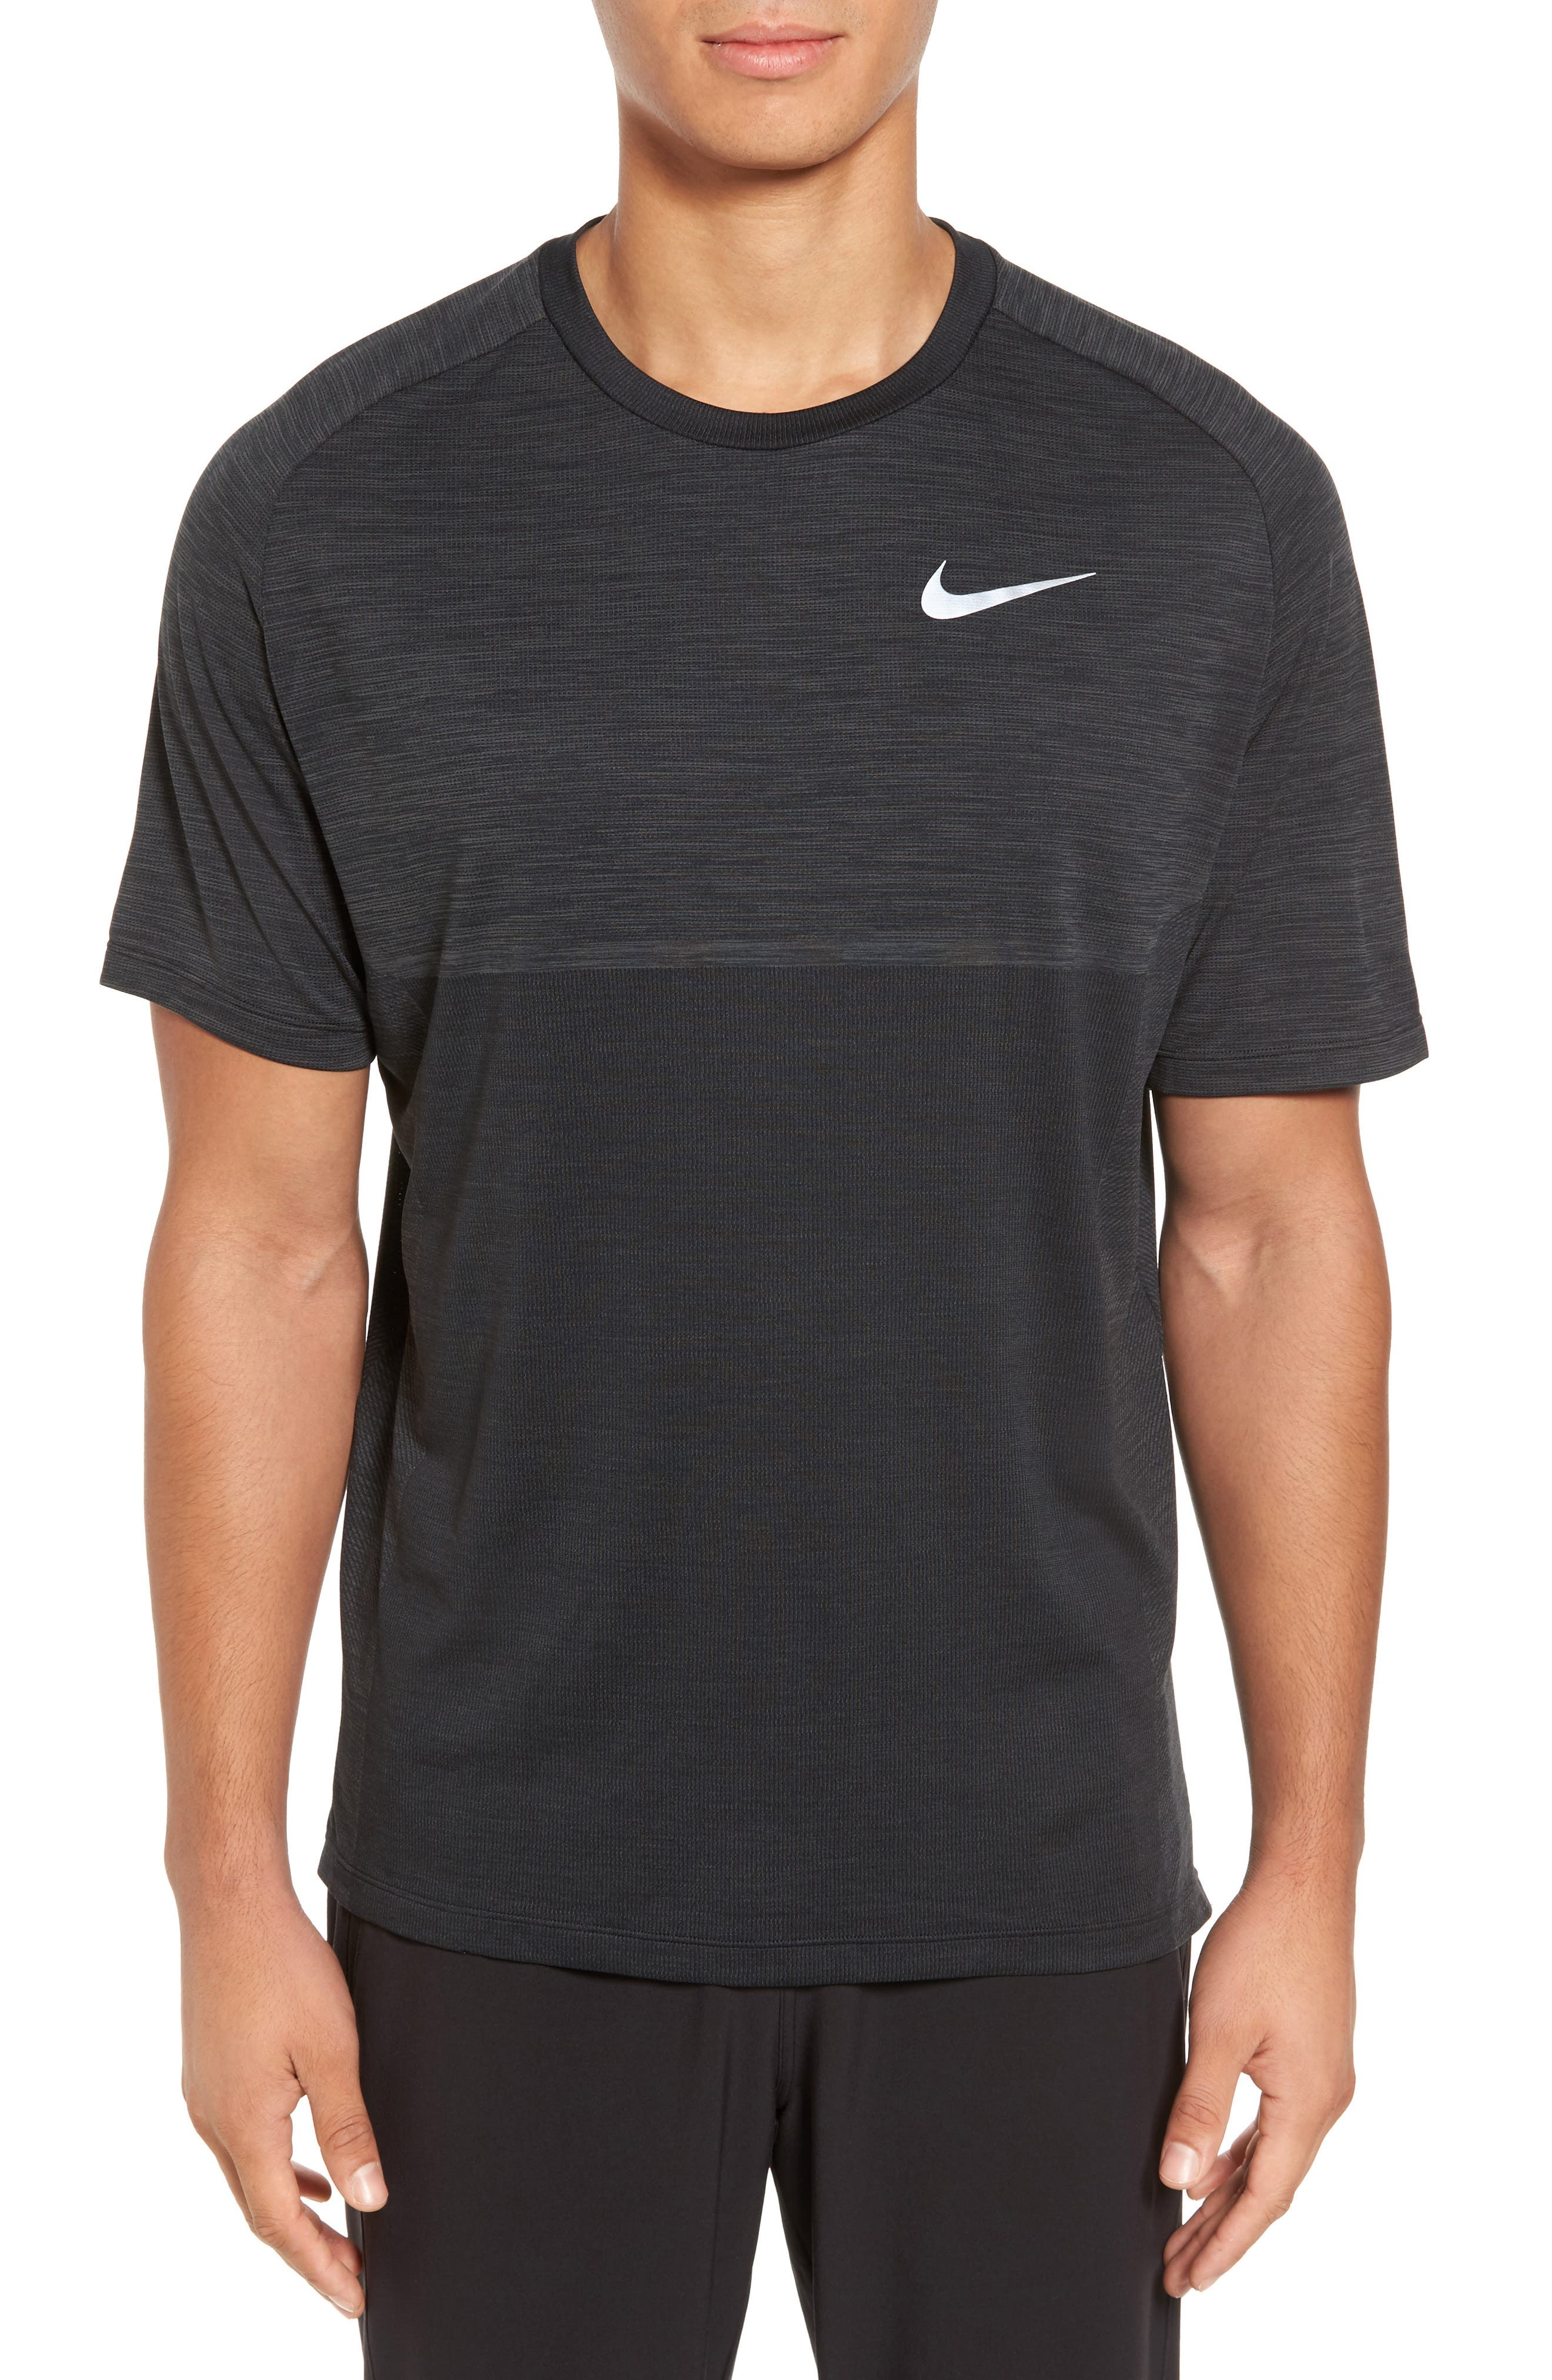 Dry Medalist Running Top,                             Main thumbnail 1, color,                             ANTHRACITE/ BLACK